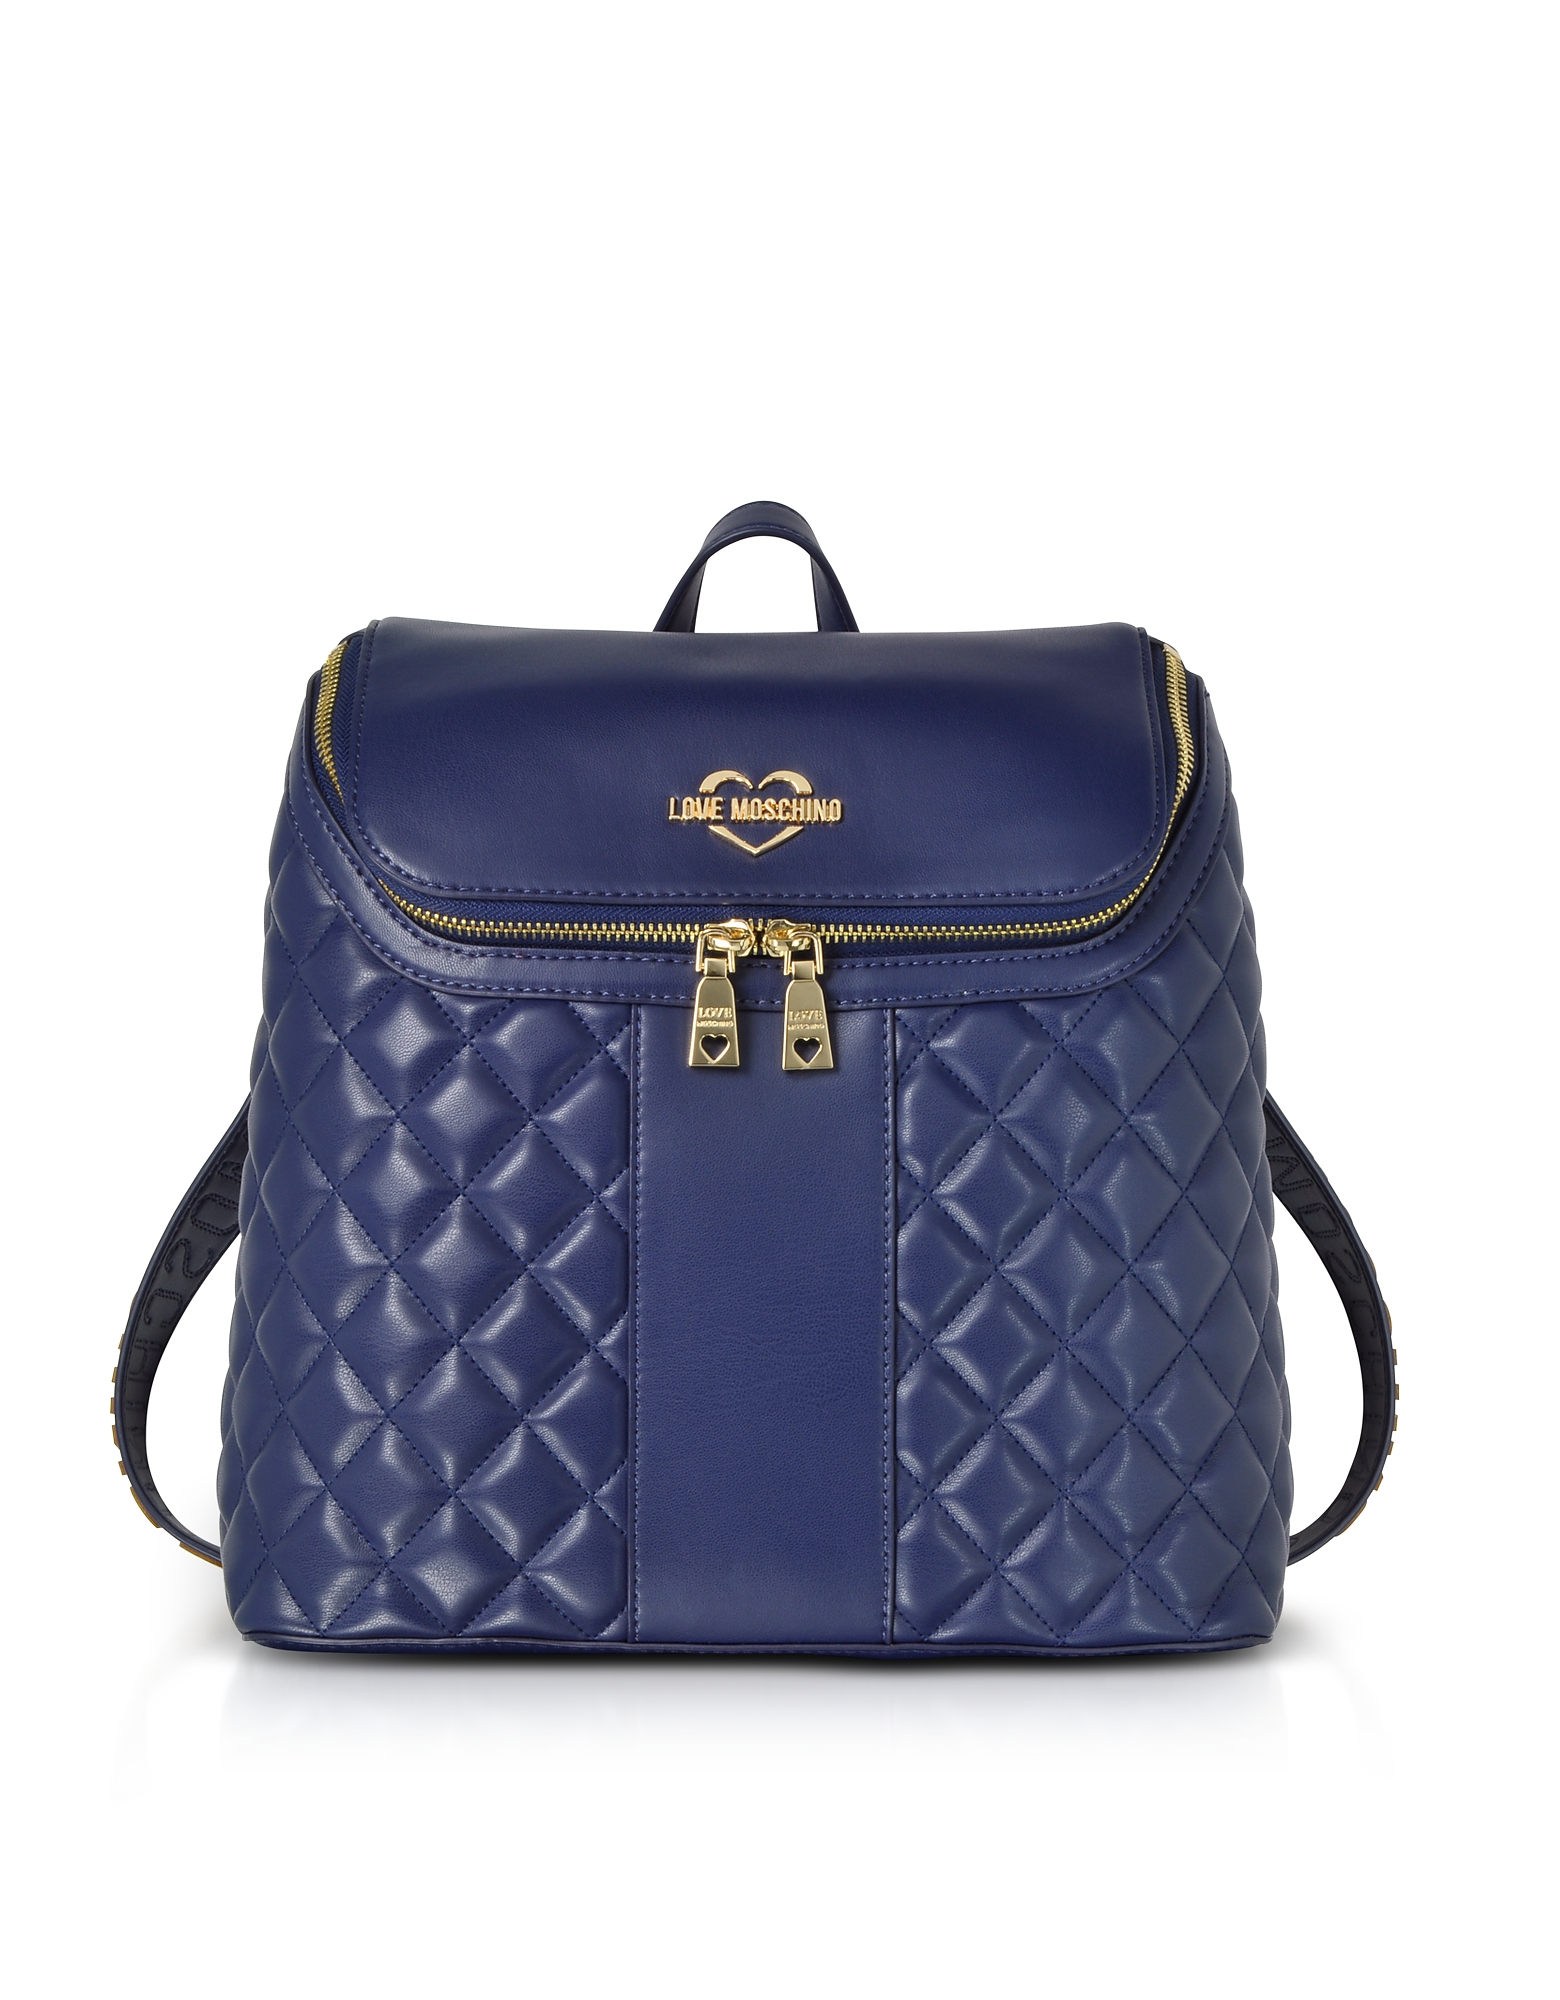 LOVE MOSCHINO Quilted Eco Leather Backpack in Blue